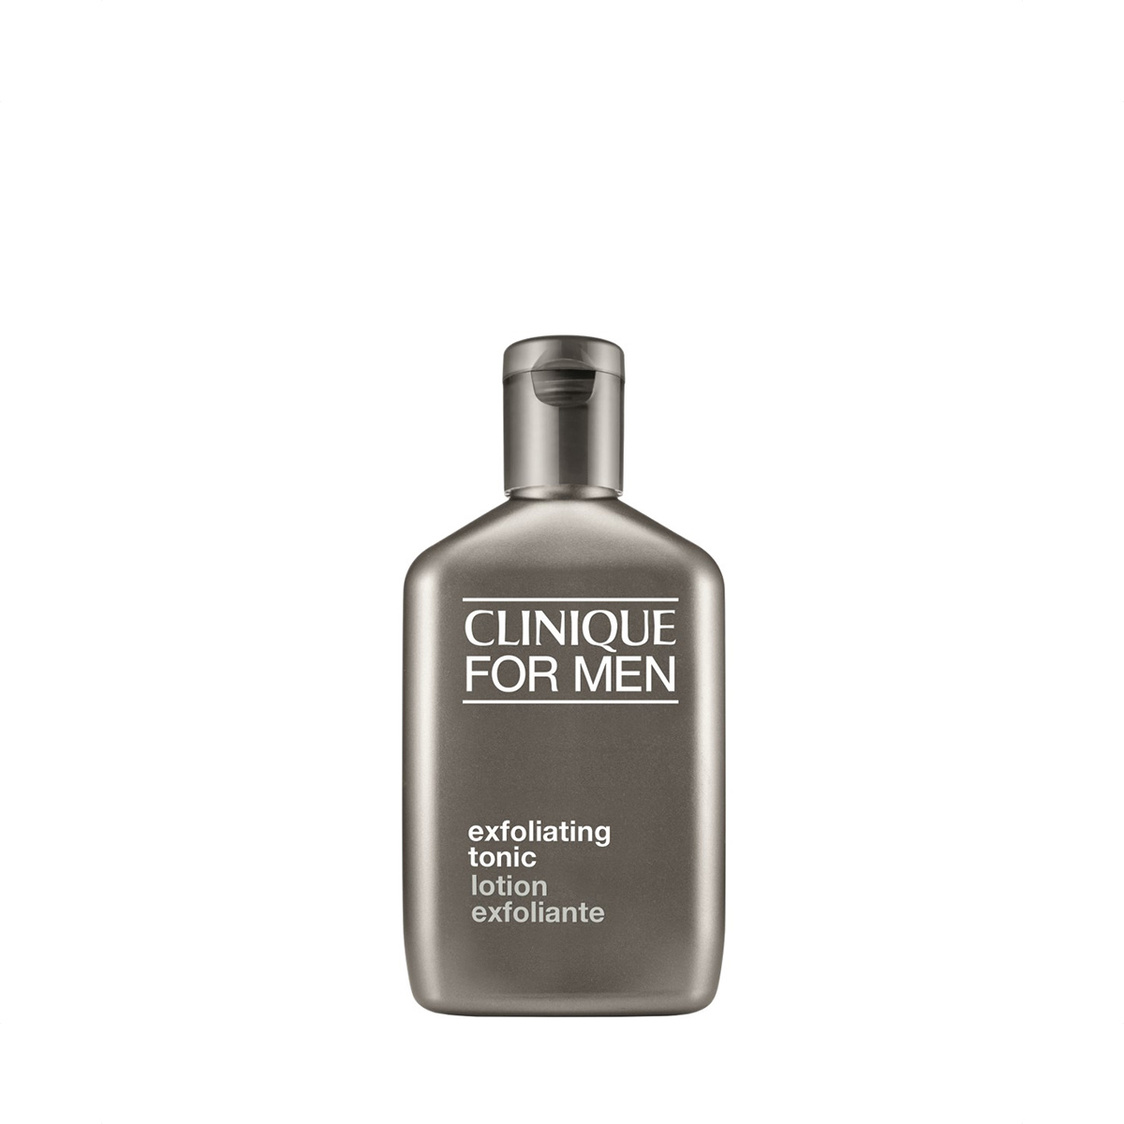 Clinique For Men Exfoiating Tonic 200ml